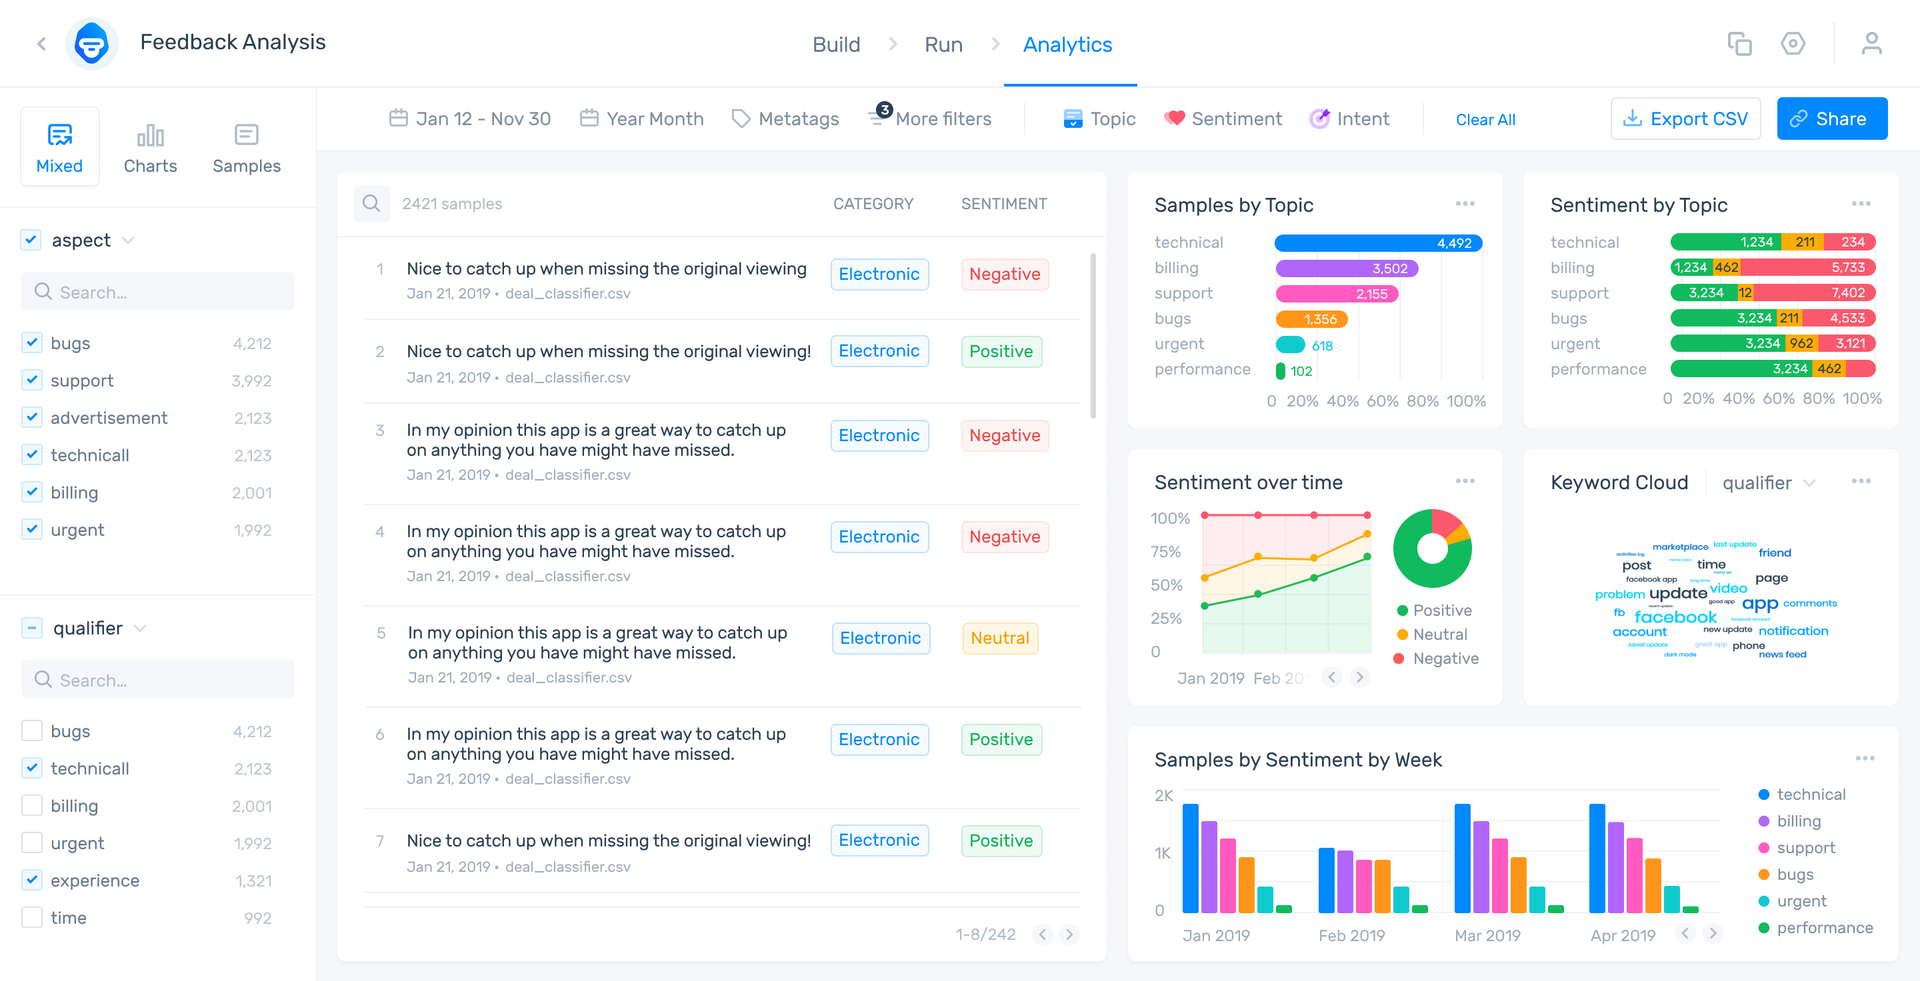 MonkeyLearn Studio dashboard showing results for intent classification and sentiment analysis in charts and graphs.